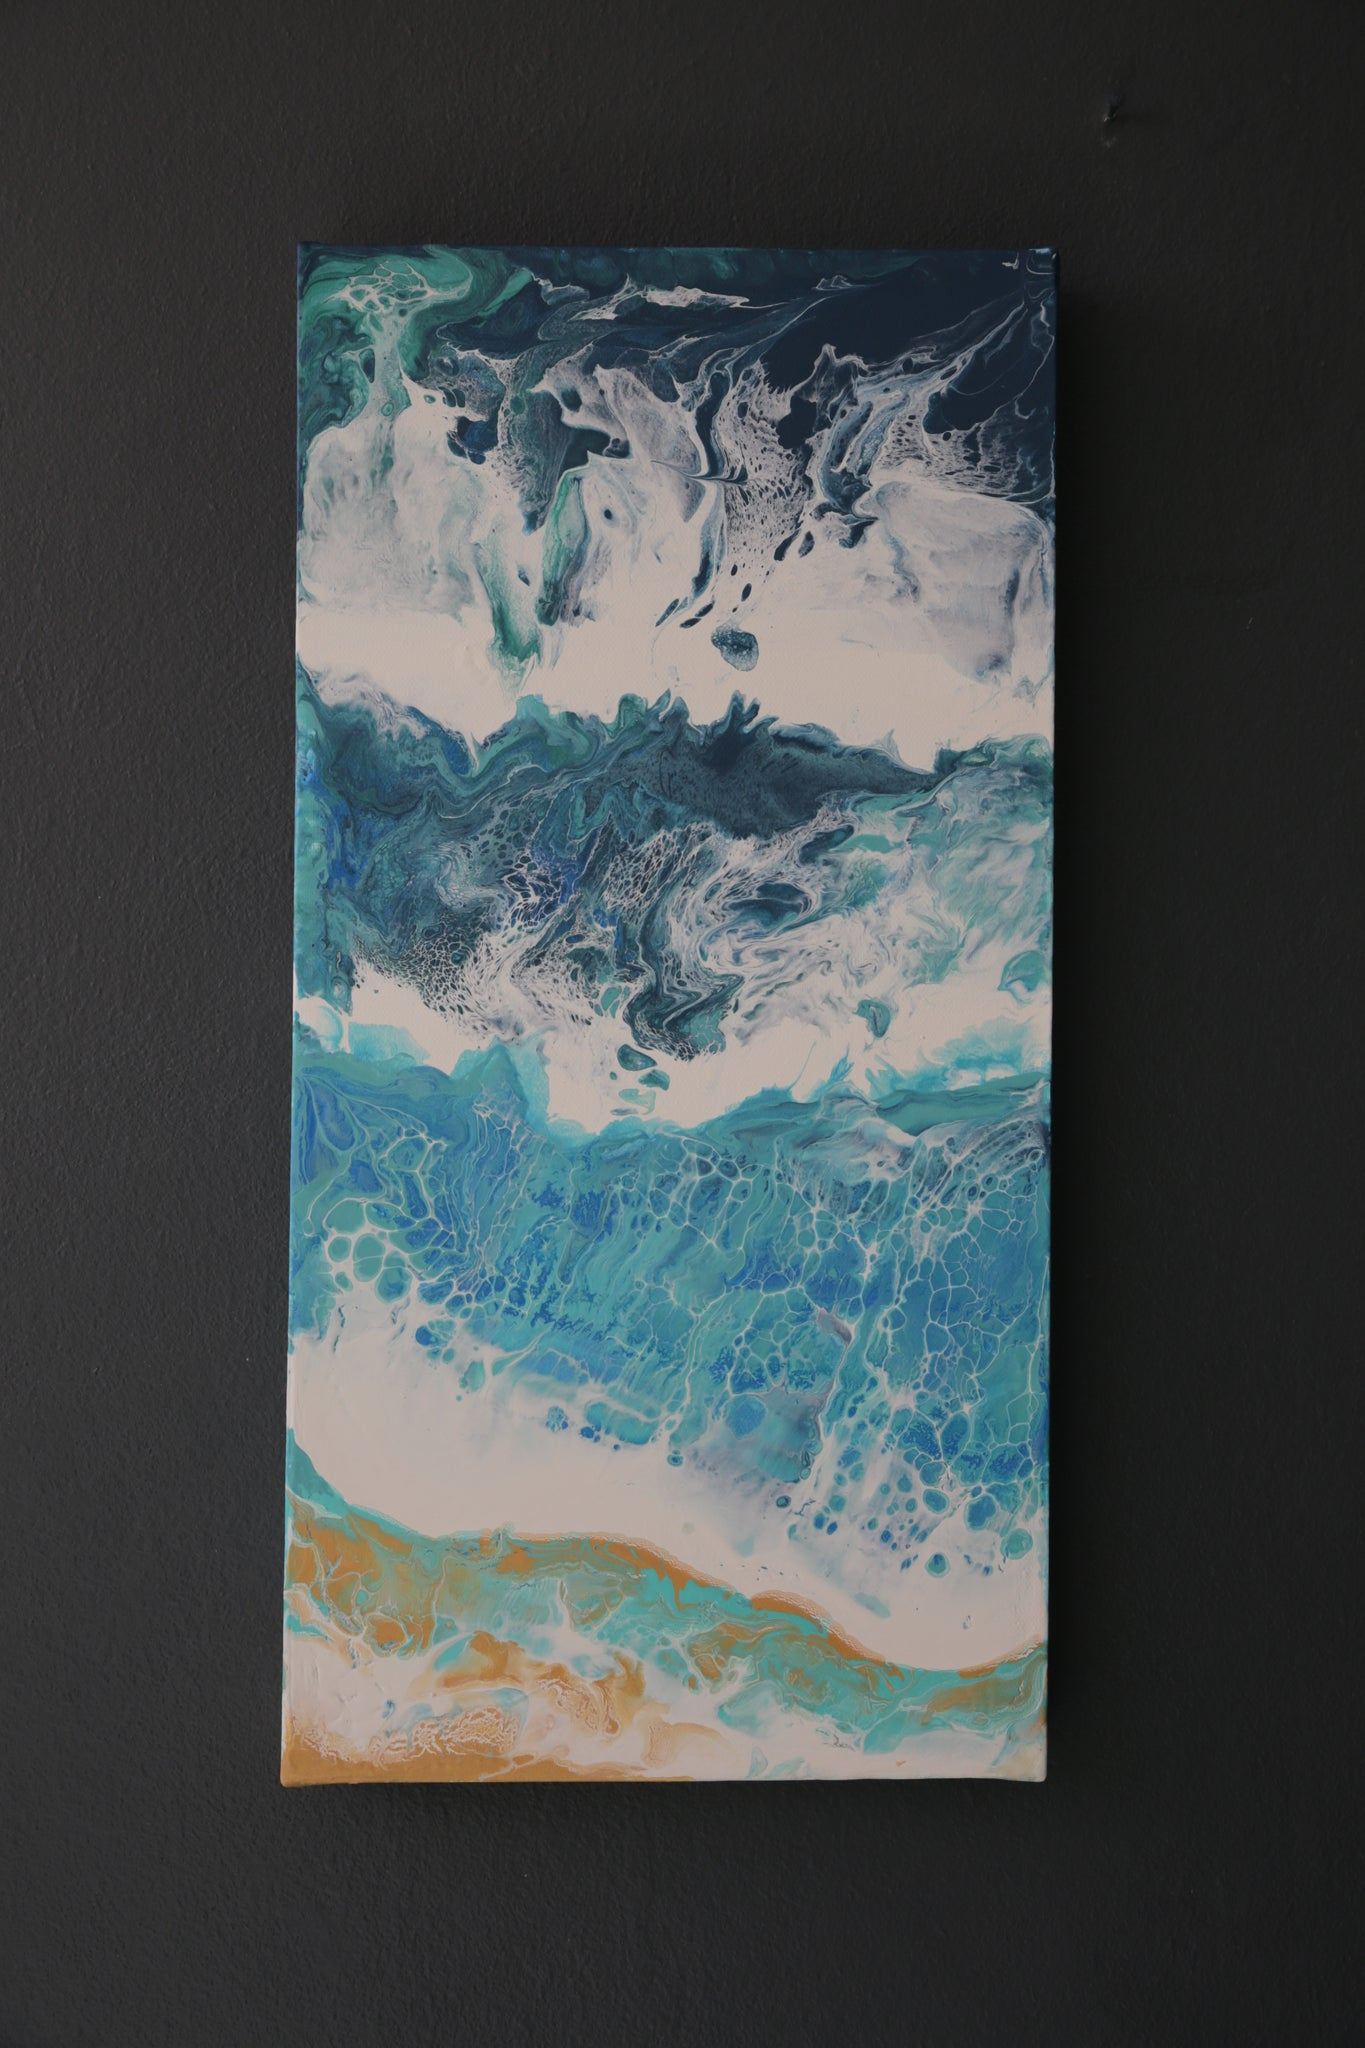 Beach Scene Painting on Canvas - Acrylic Pour Technique - Ocean #2